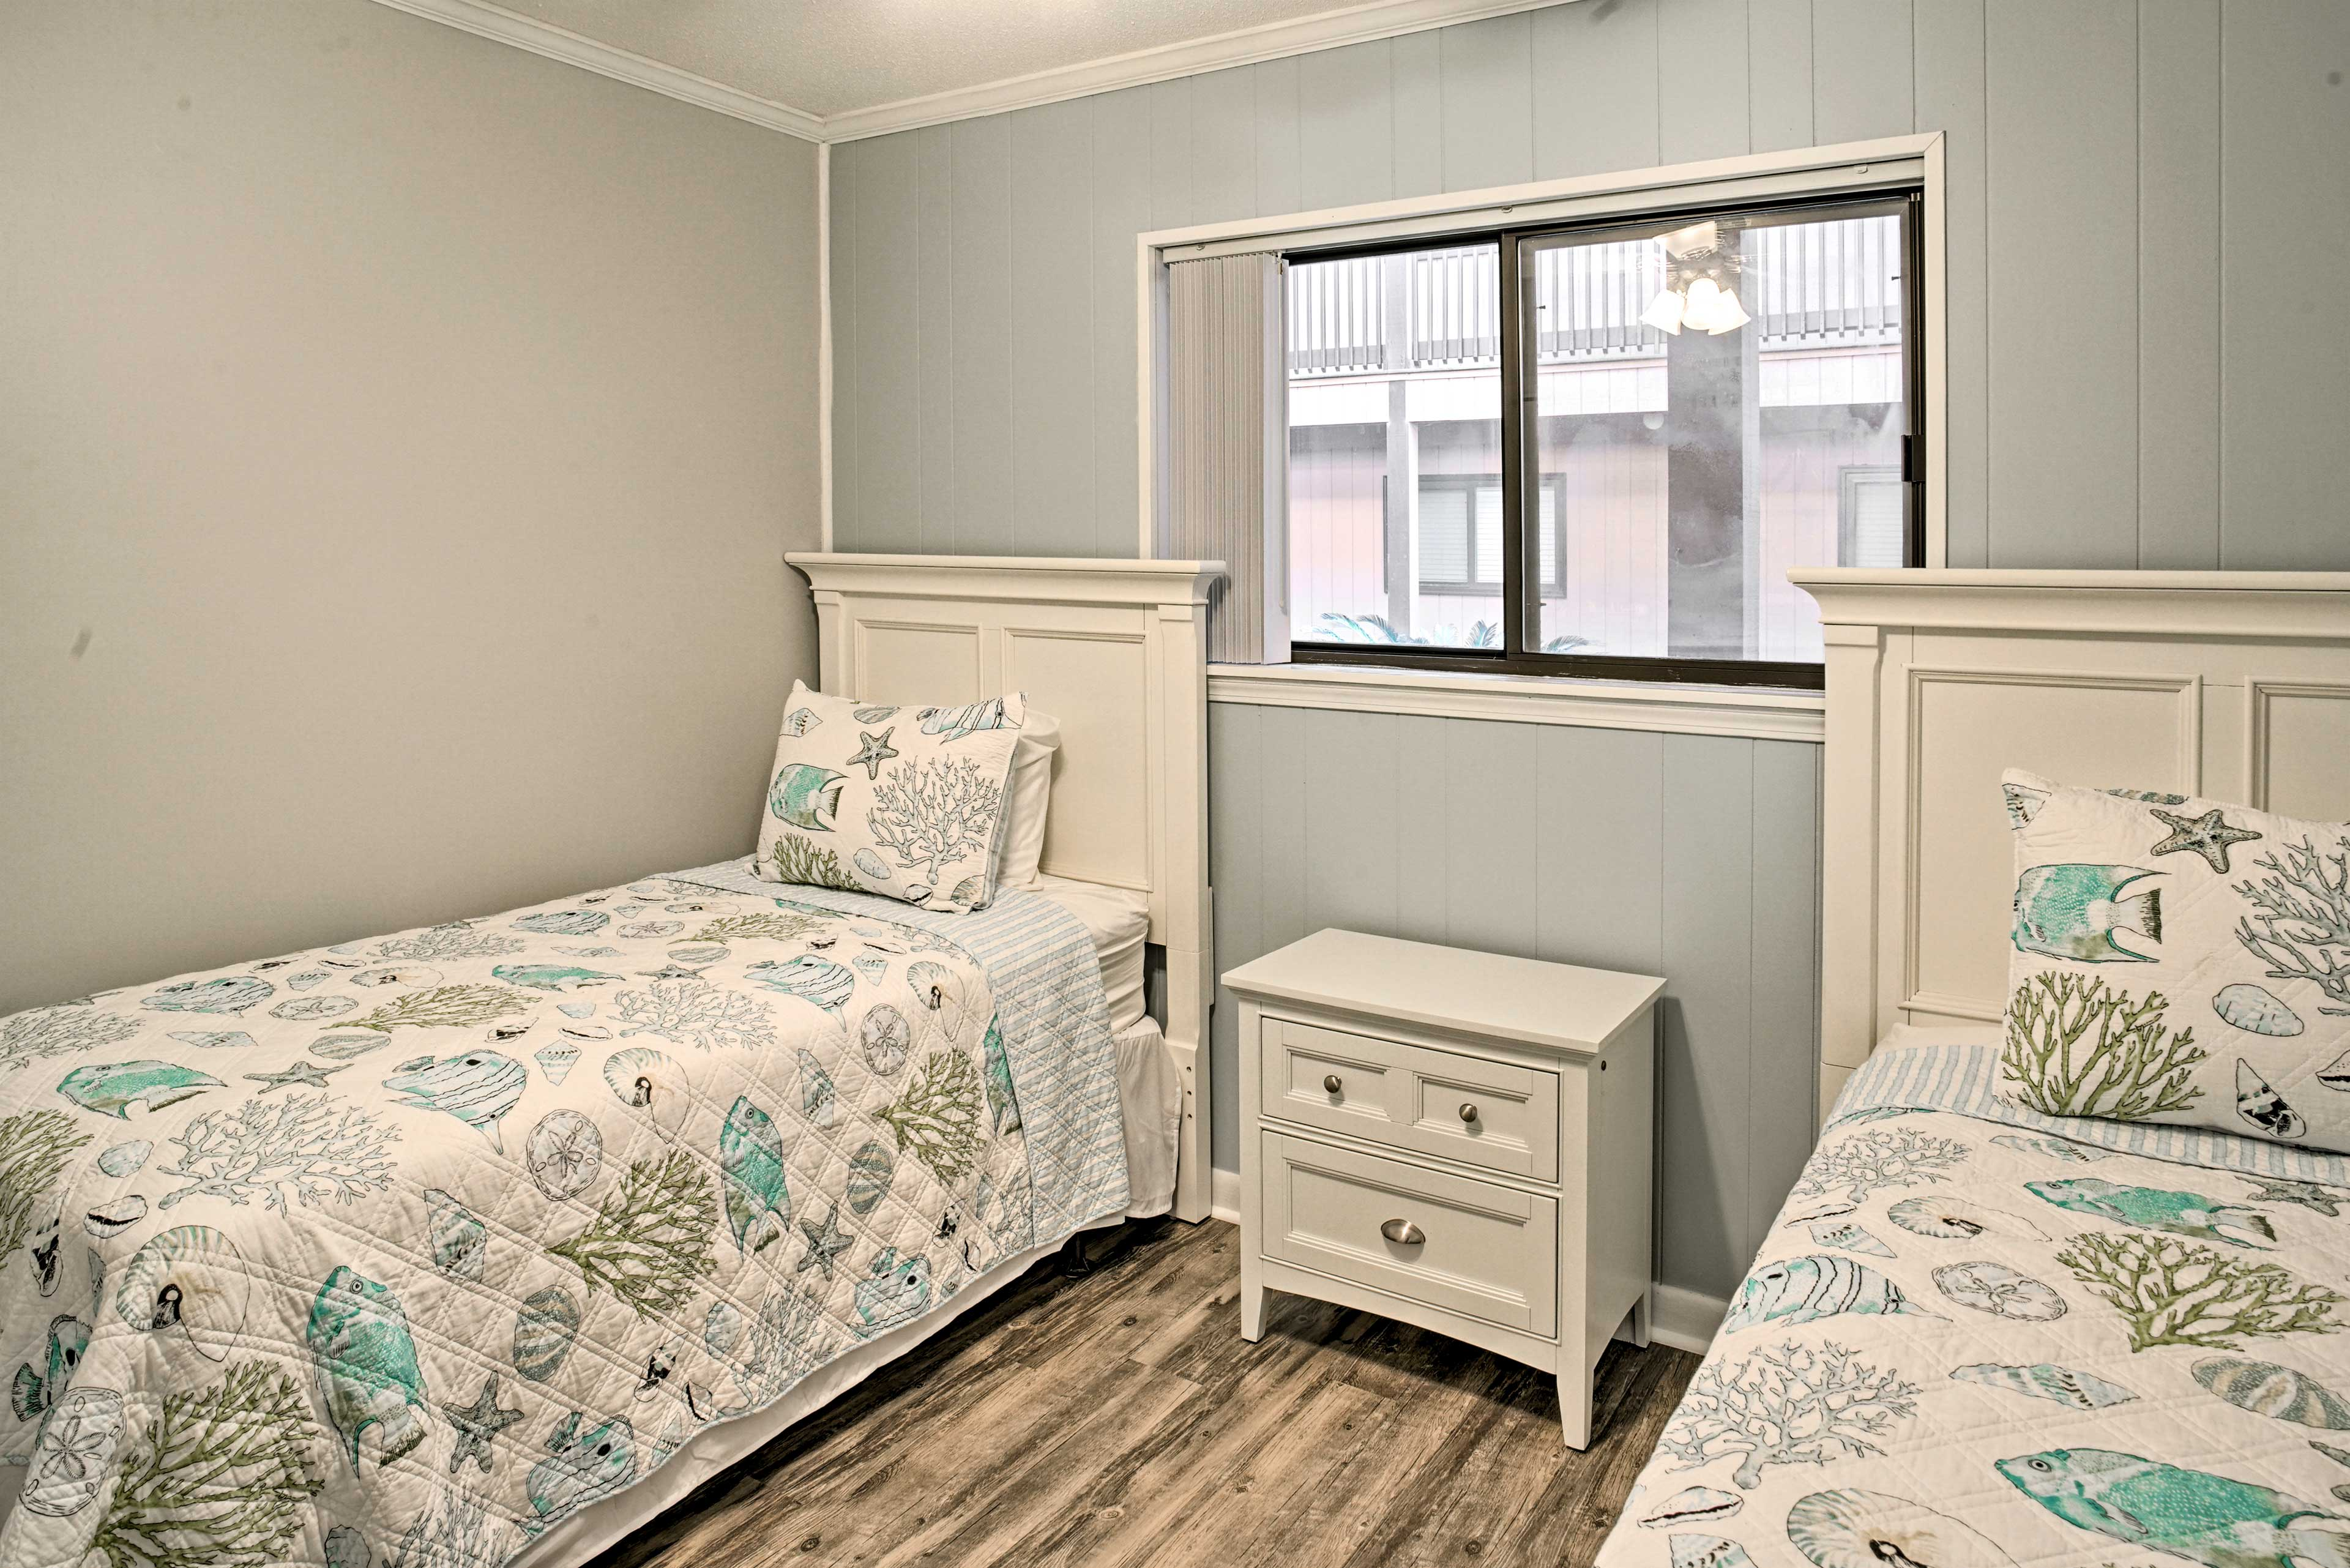 The second bedroom now features 1 full bed and 1 twin bed.